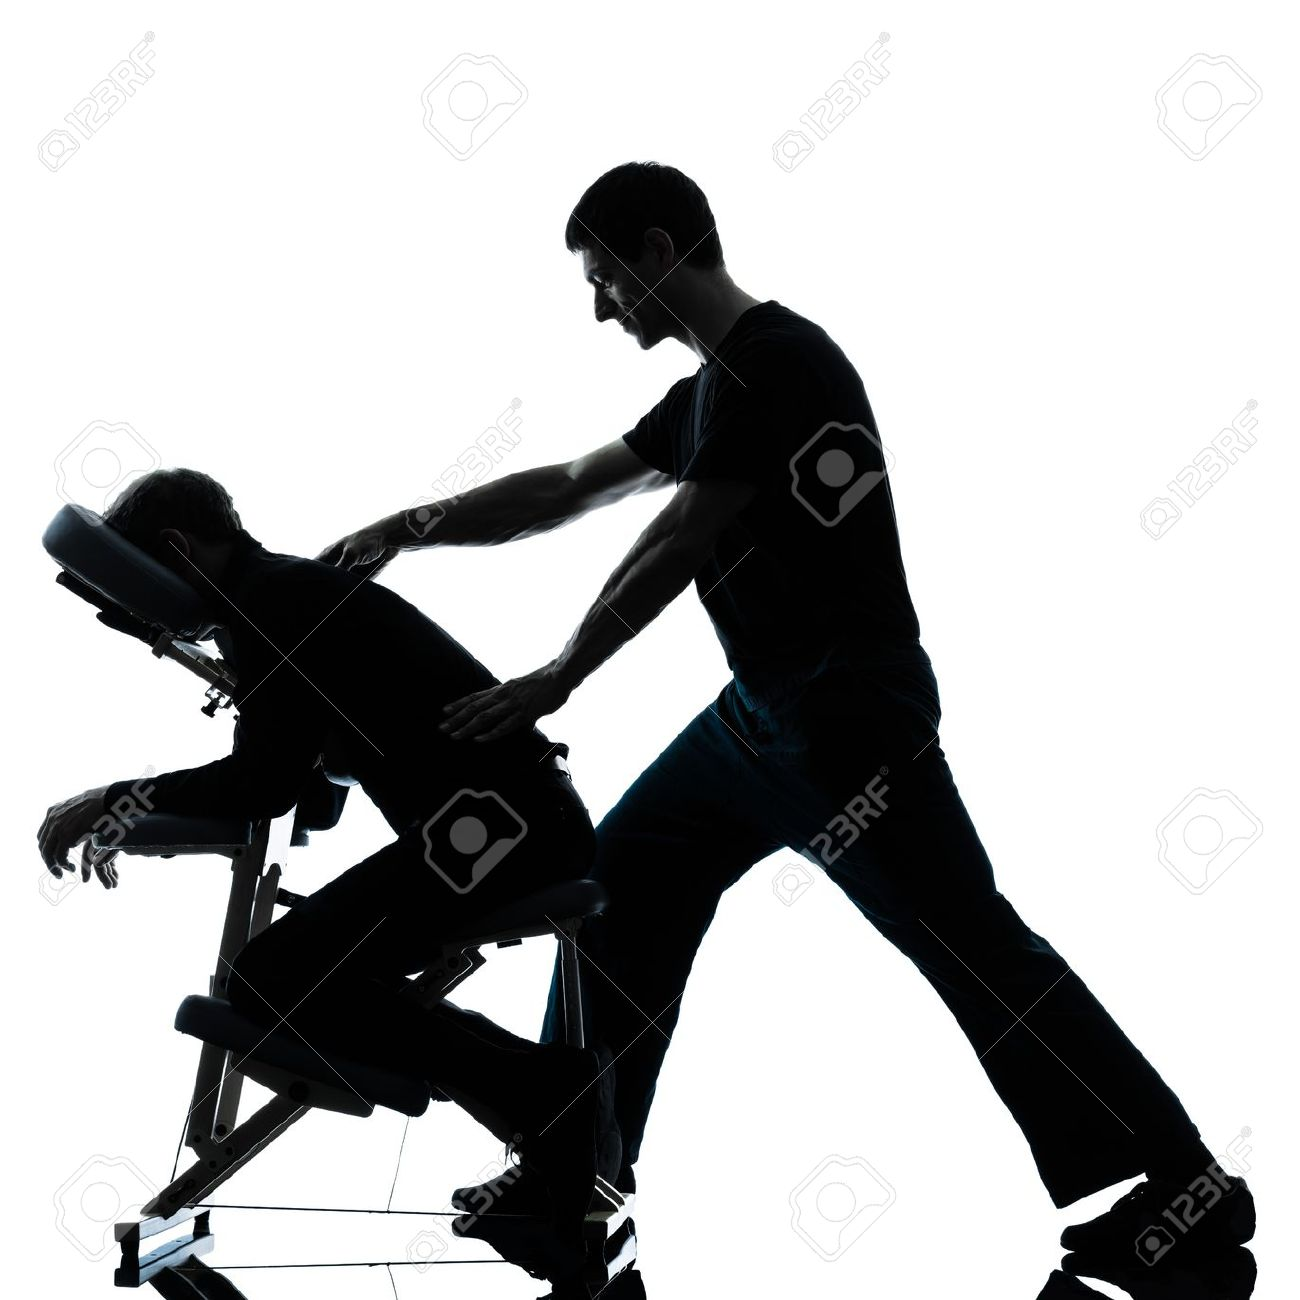 Chair massage therapy - Massage Therapy Two Men Performing Chair Back Massage In Silhouette Studio On White Background